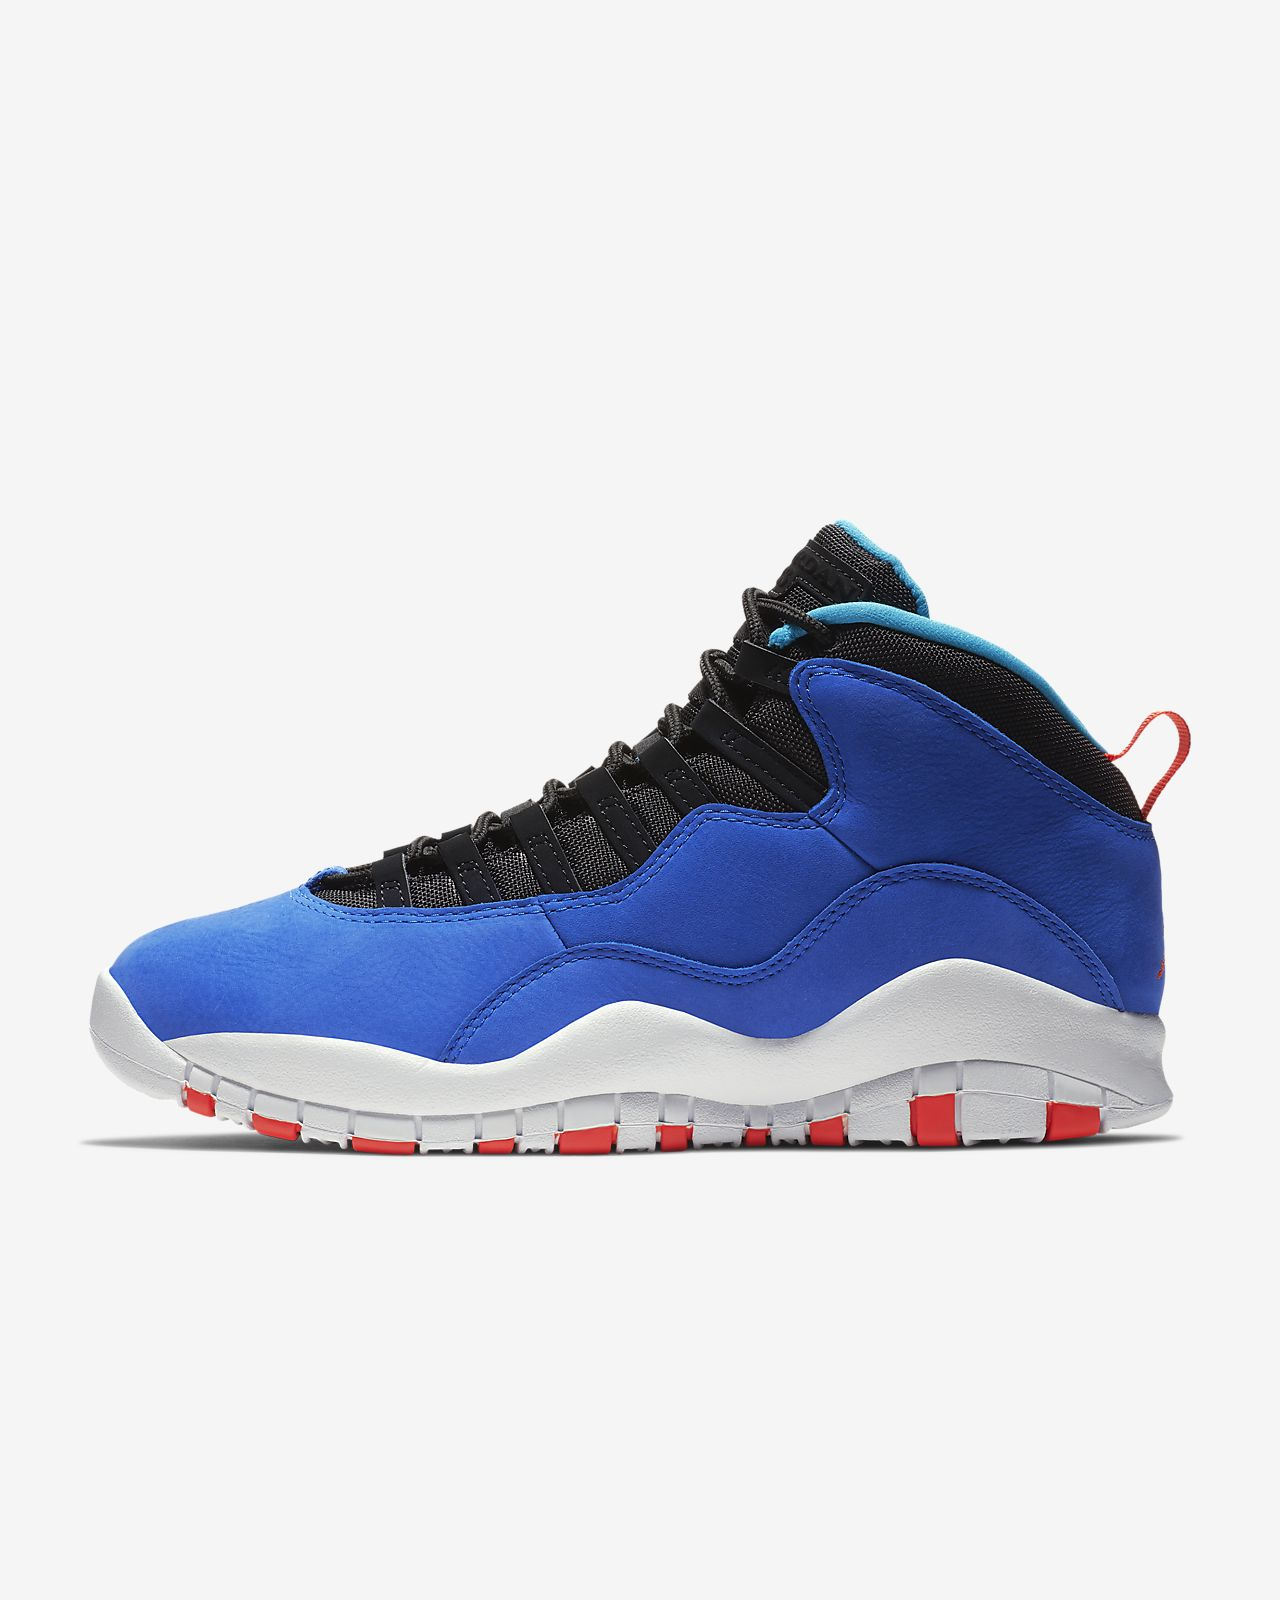 79f2c5265dc1 Air Jordan 10 Retro Men s Shoe. Nike.com AU